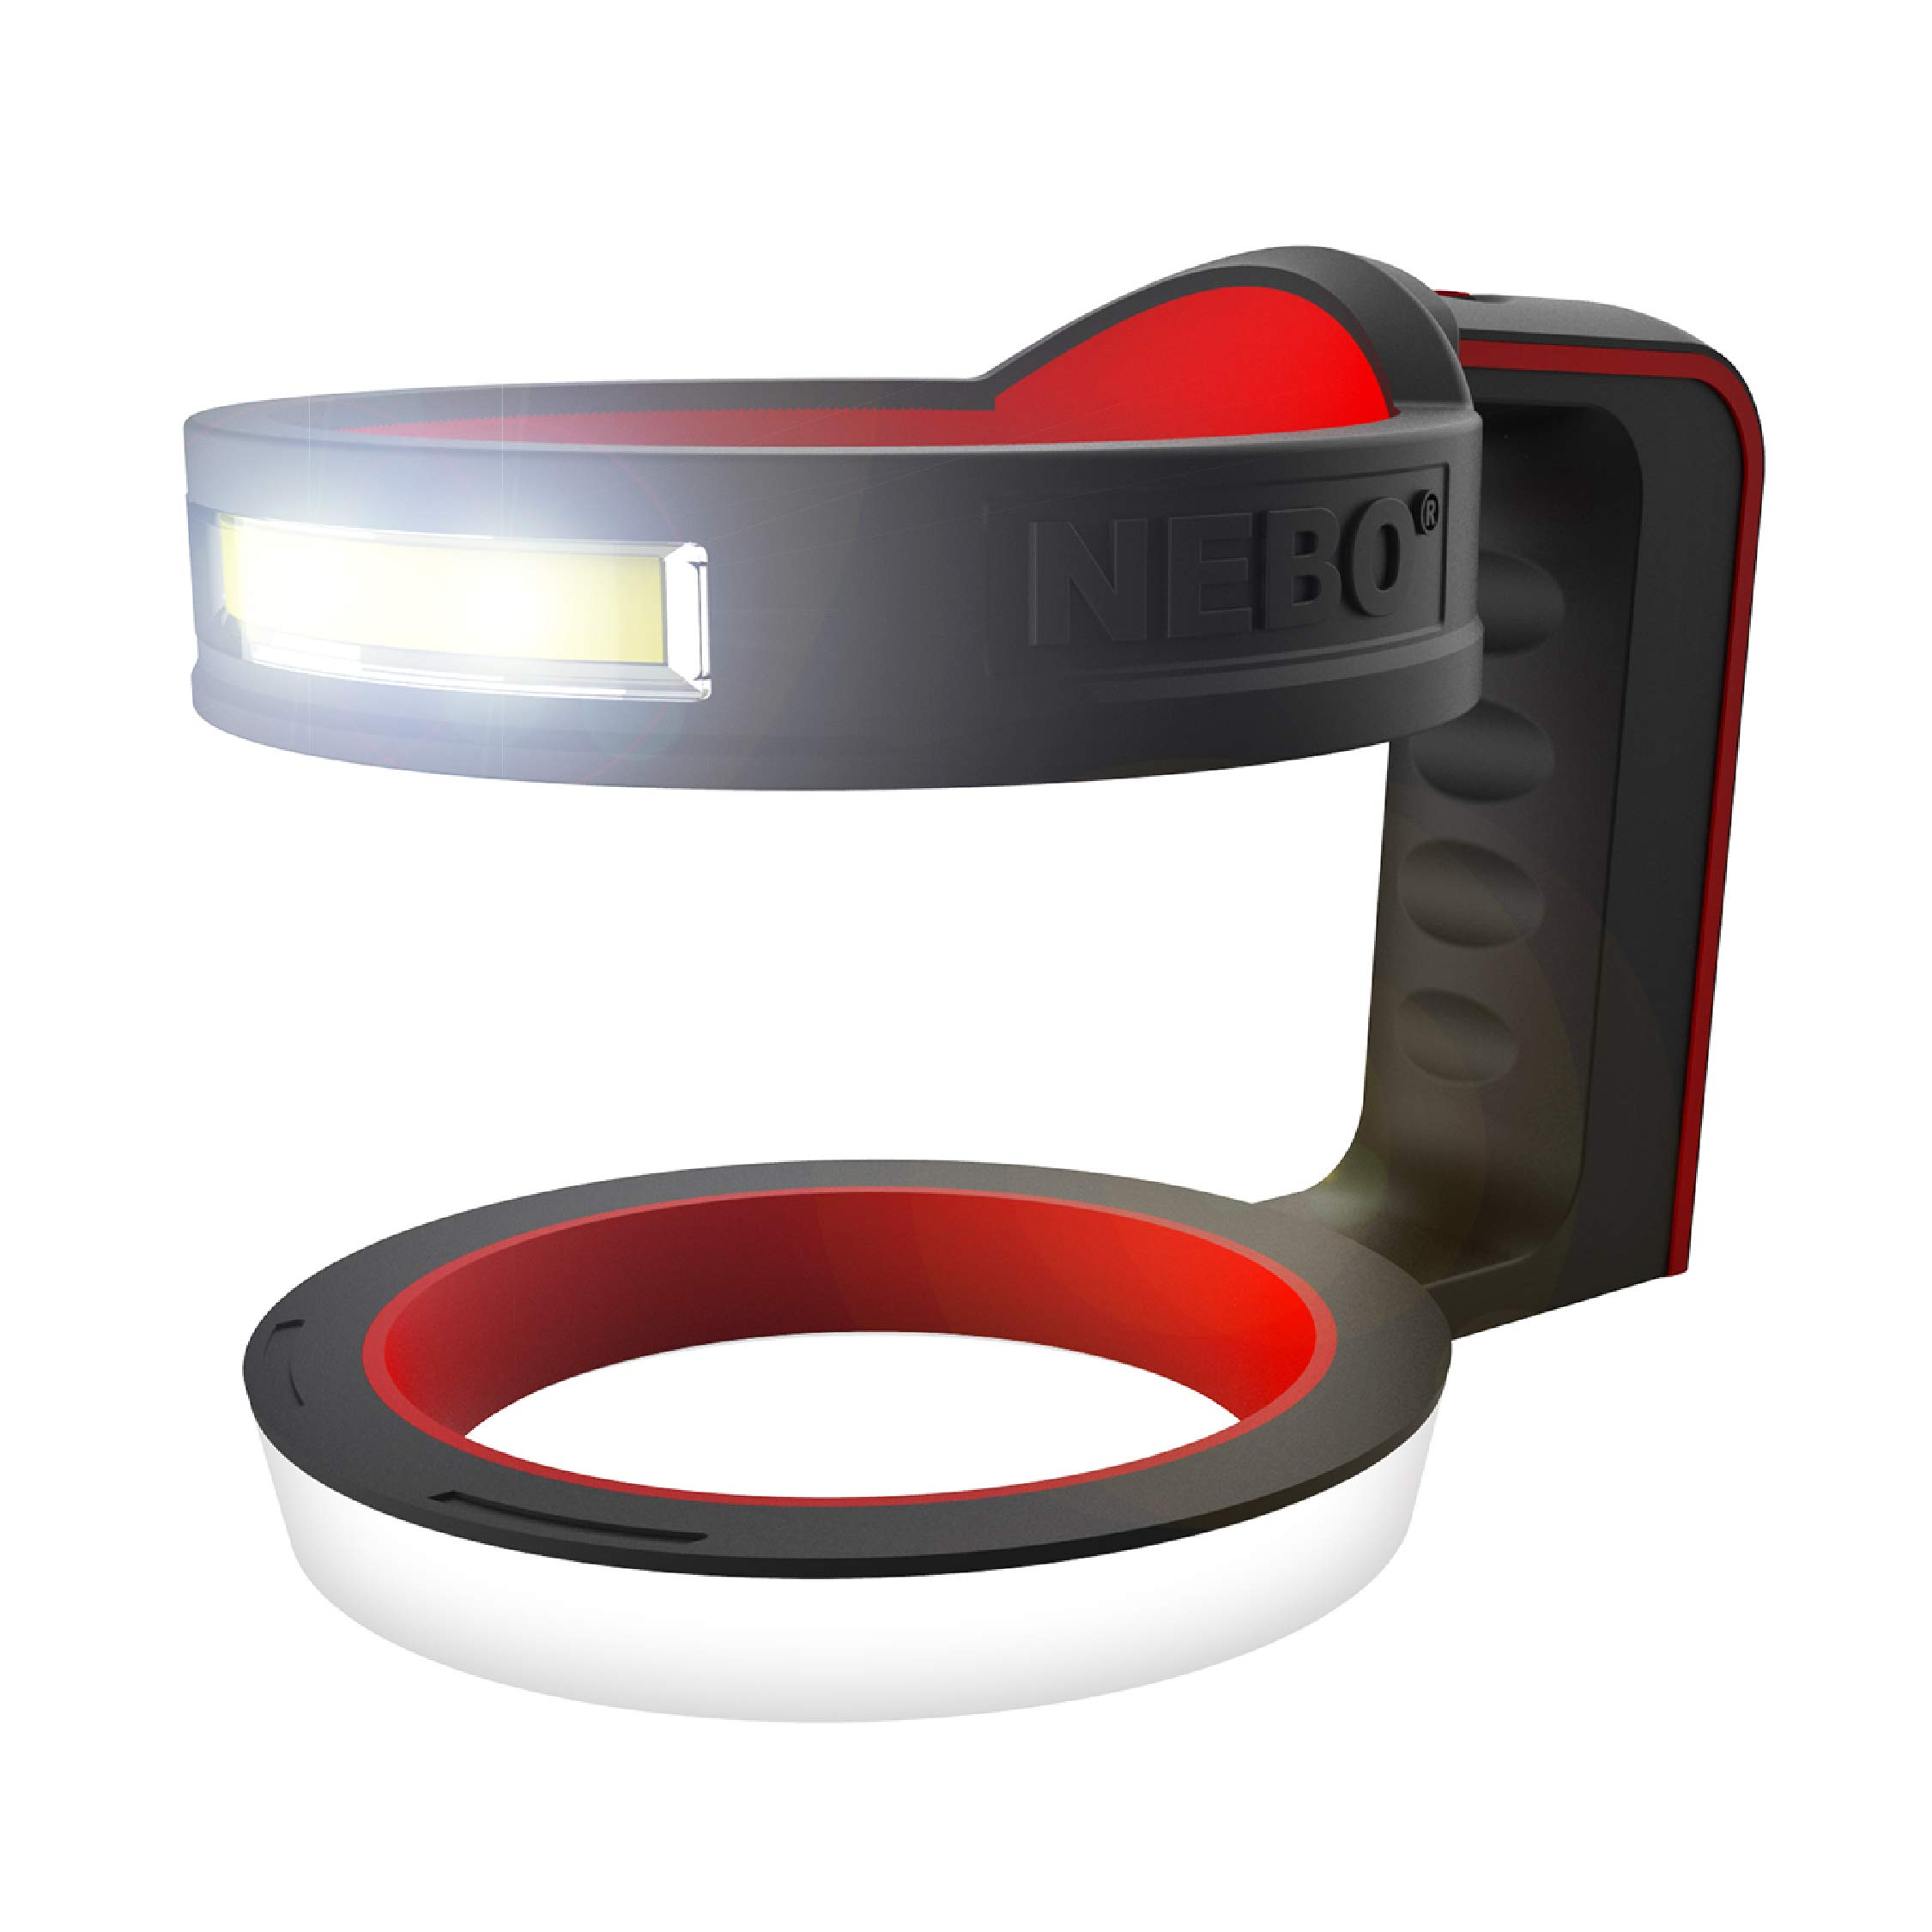 NEBO Glow Yetti Tumbler Holder: Will fit a 30oz Tumbler or a 20oz Tumbler with The Included Insert, This Cup Handle Doubles Over As A High Lumen Flashlight - 6668